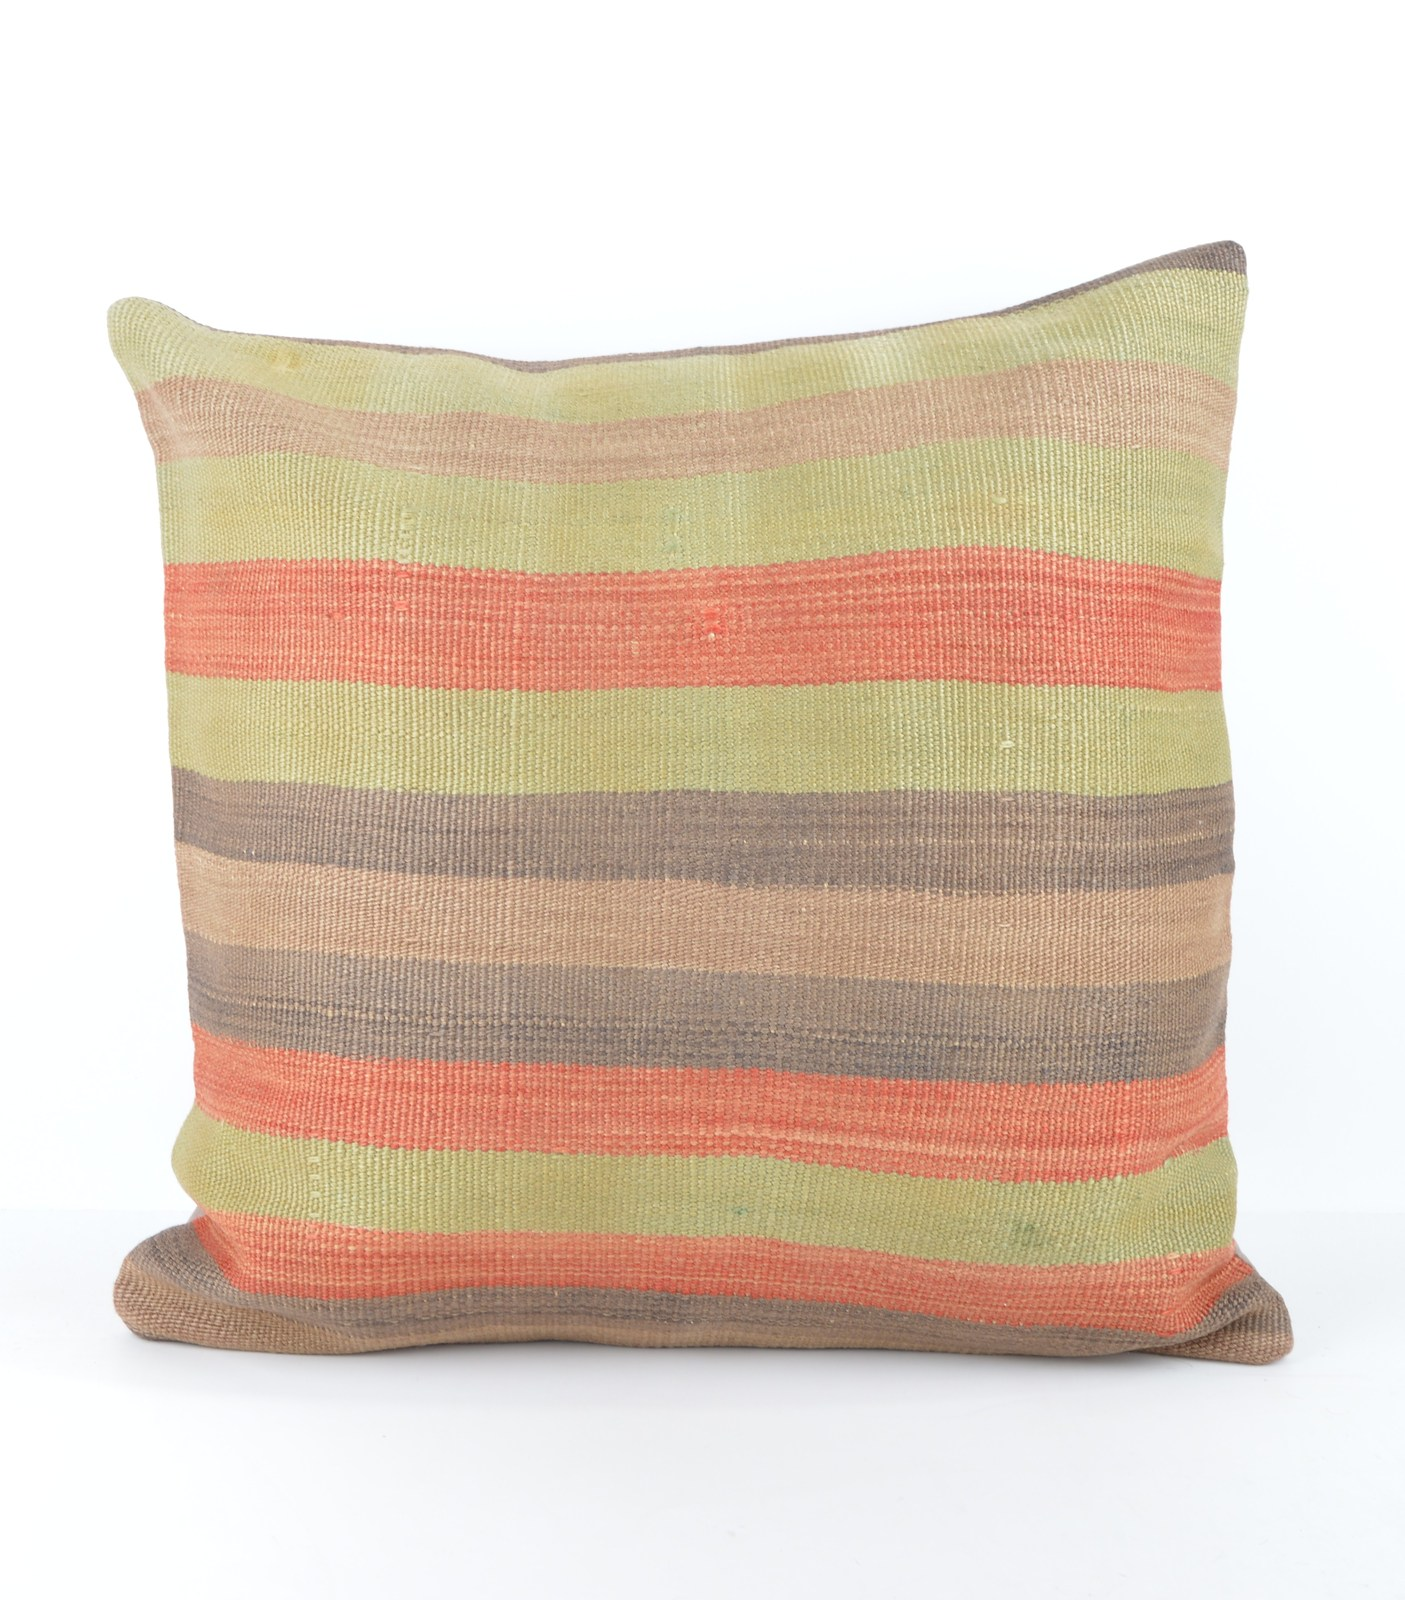 large kilim pillow 20x20 kilim cushion 50x50cm large pillow big throw pillow - Pillows